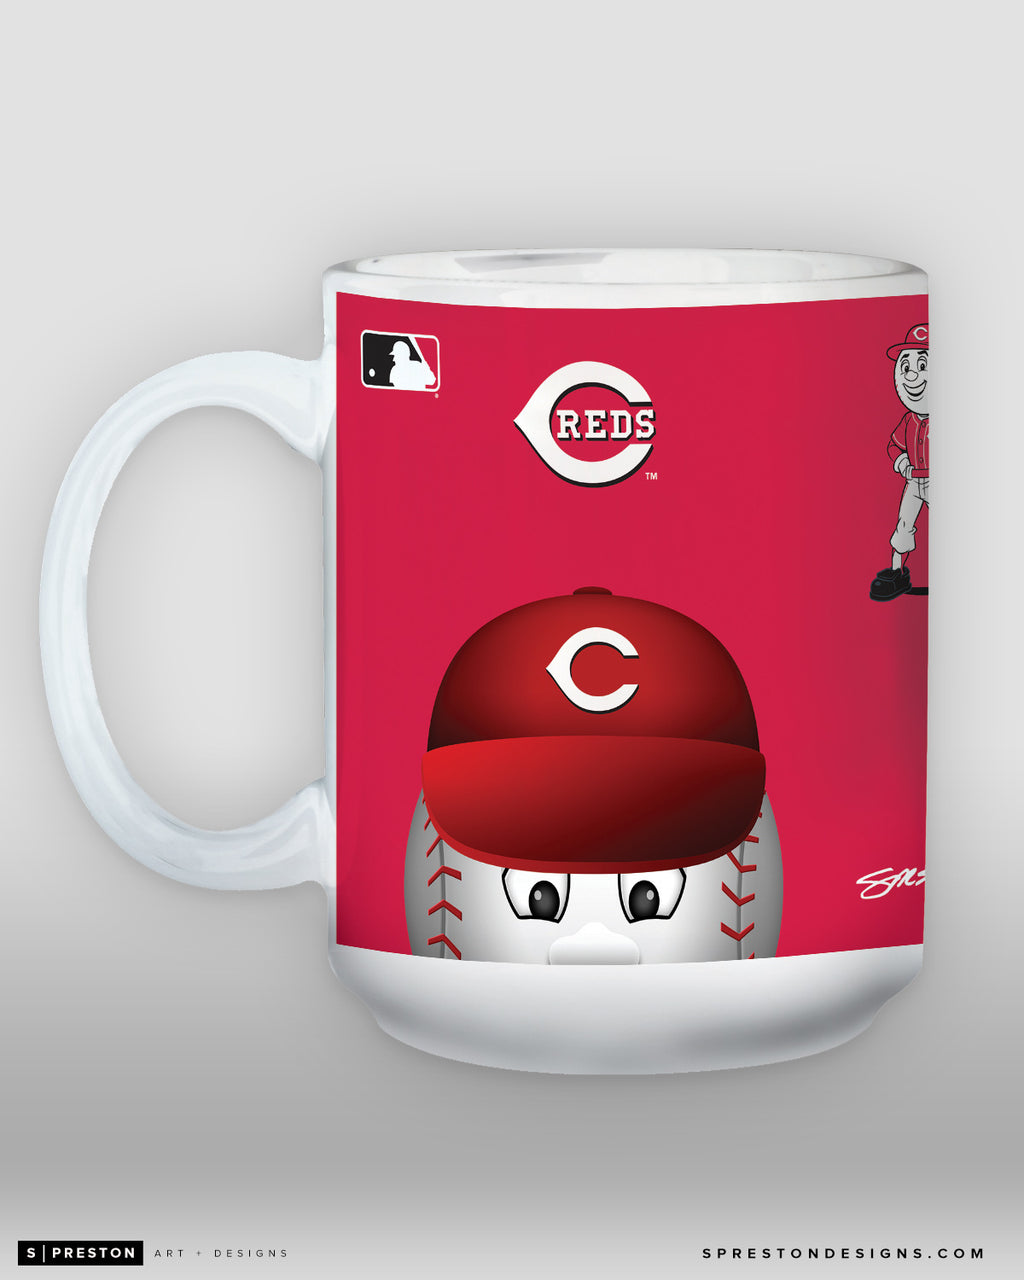 Minimalist Mr. Red Coffee Mug PRE-ORDER - MLB Licensed - Cincinnati Reds Mascot